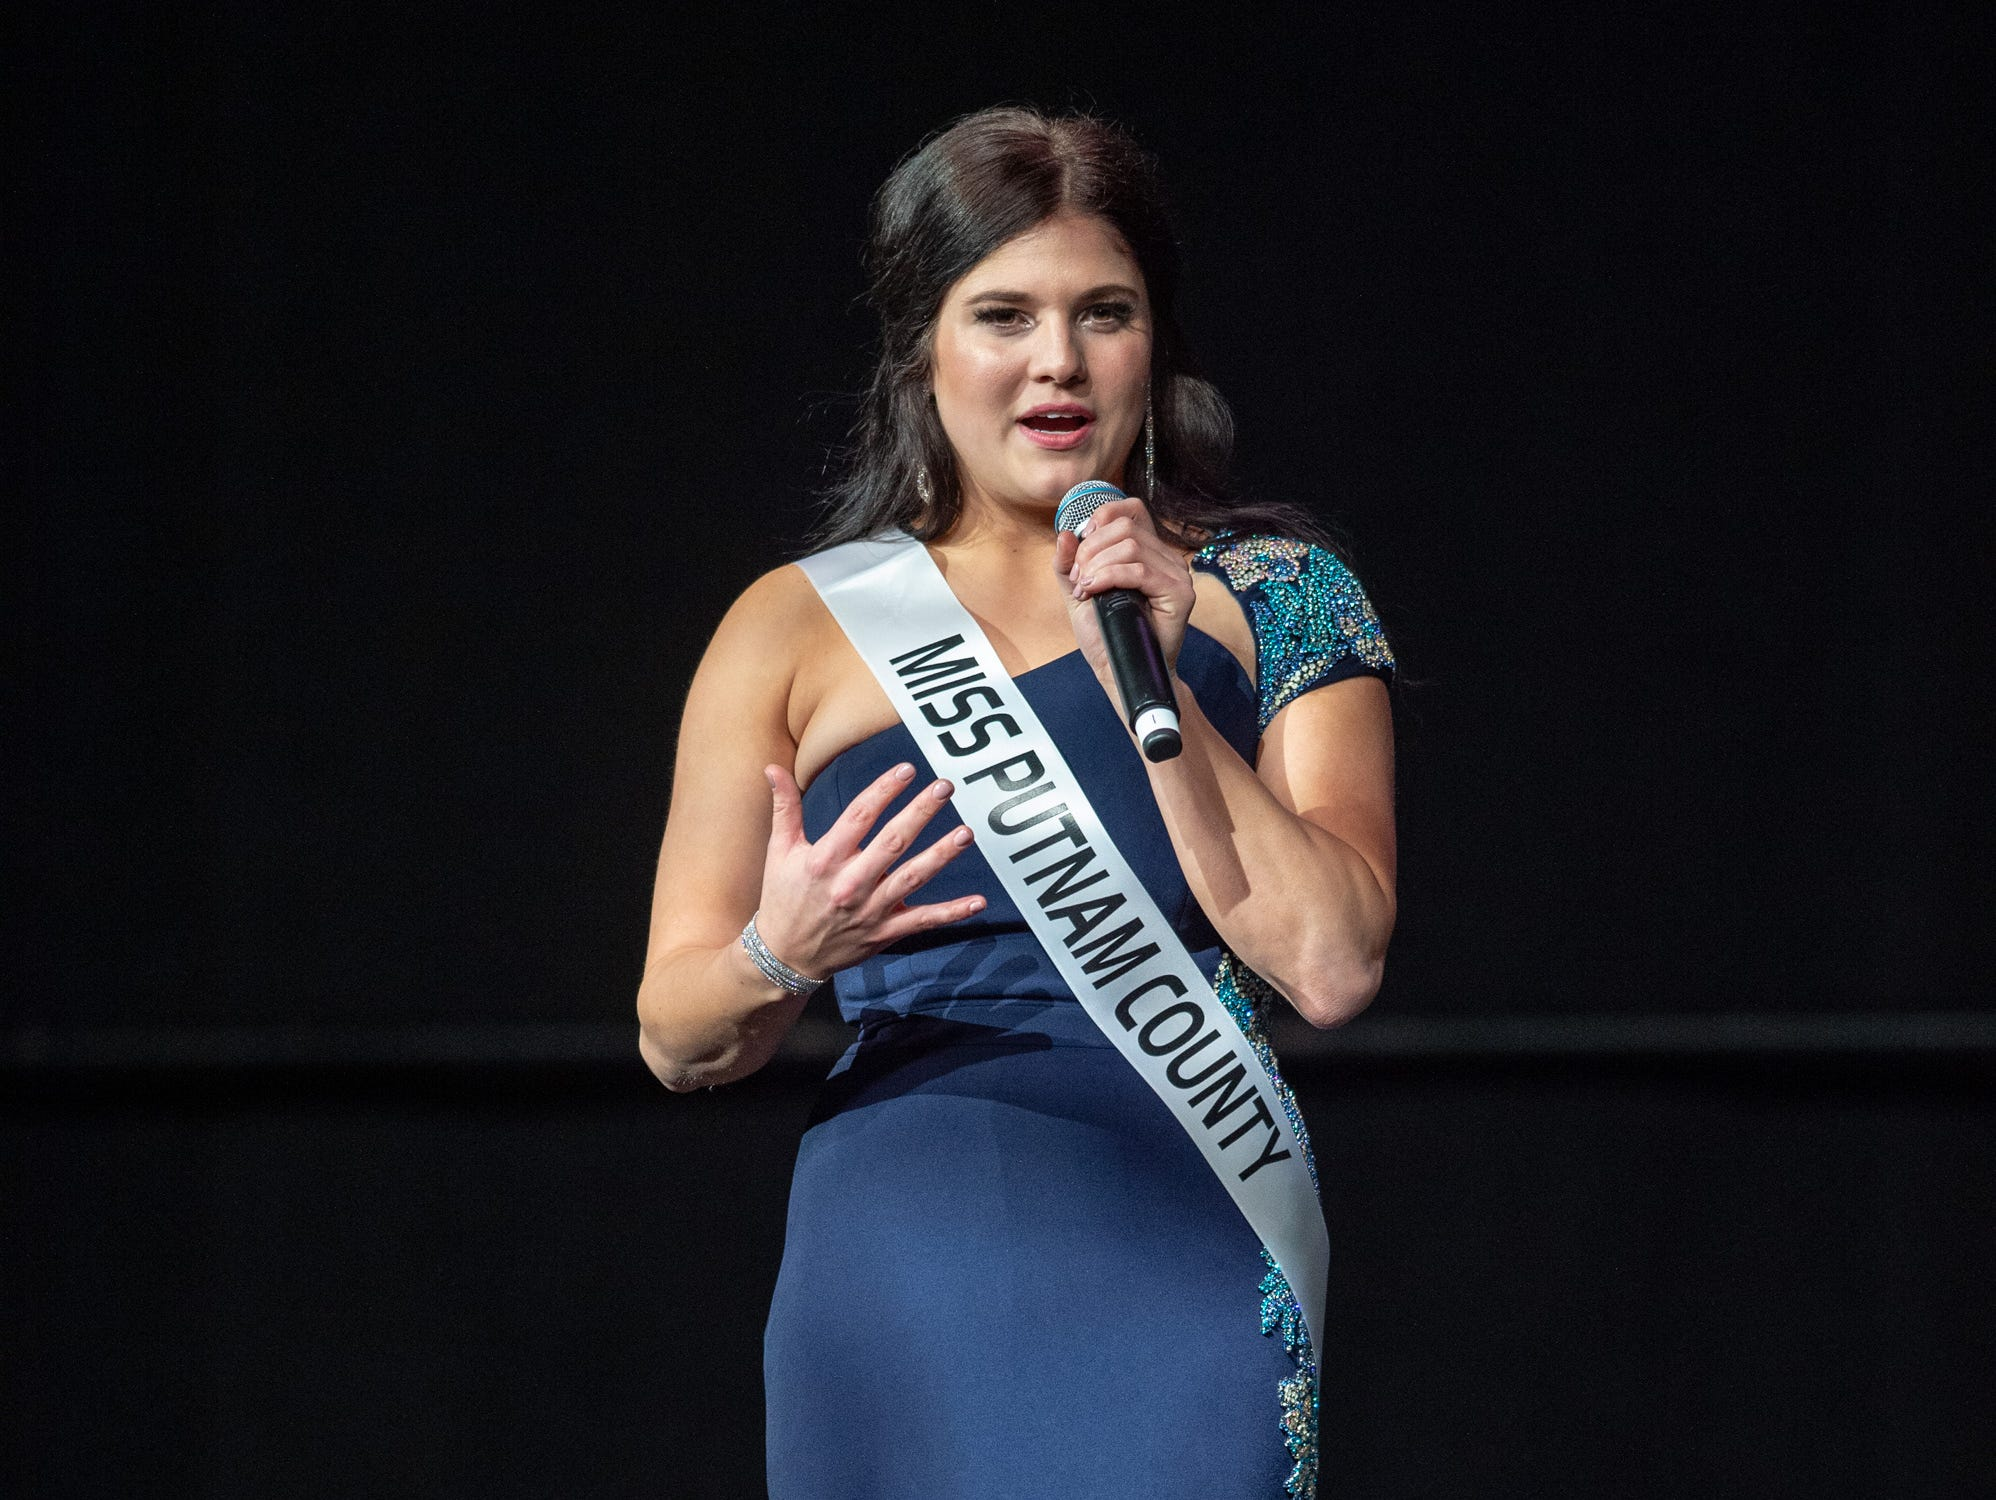 """Miss Putnam County, Reagan Bowling, was given the word """"humility"""" to use in a spontaneous response during the 61st Indiana State Fair Queen Pageant at the Indiana State Fairgrounds in Indianapolis on Sunday, Jan. 6, 2019."""